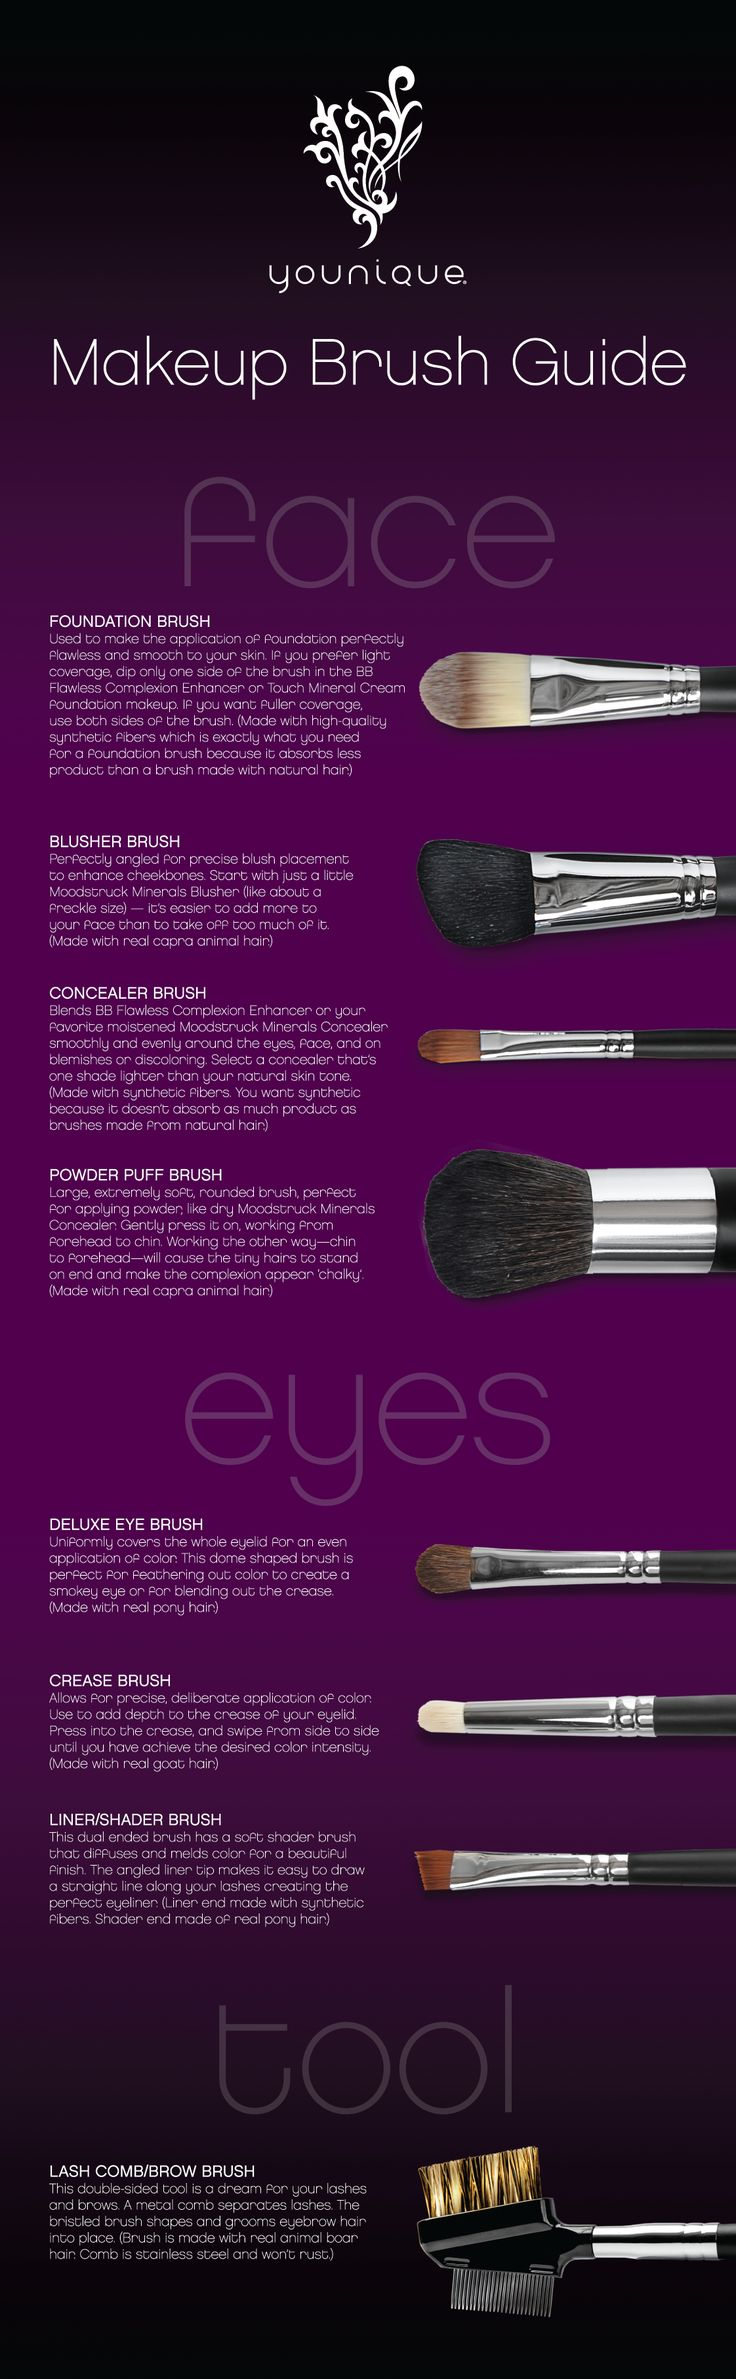 Ever wonder what each makeup brush is for? This infographic tells you the purpose of each brush and some great makeup application tips.https://www.youniqueproducts.com/themakeupman/